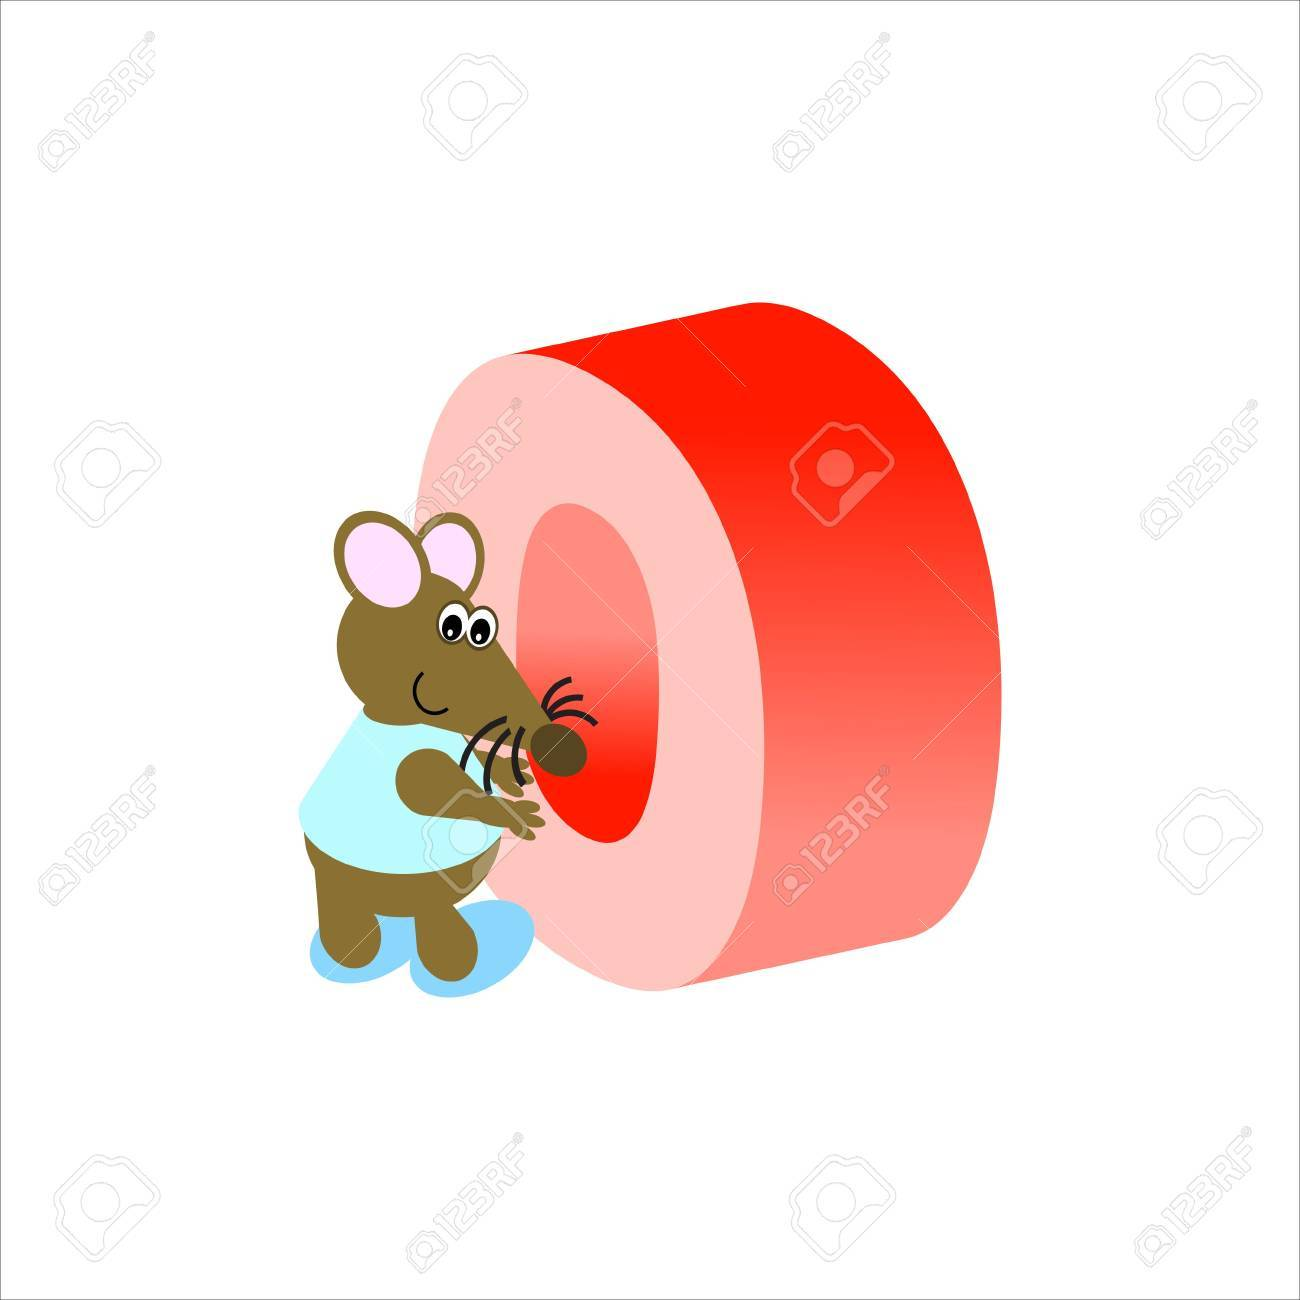 Happy Mouse with upper case letter O Stock Photo - 4998153